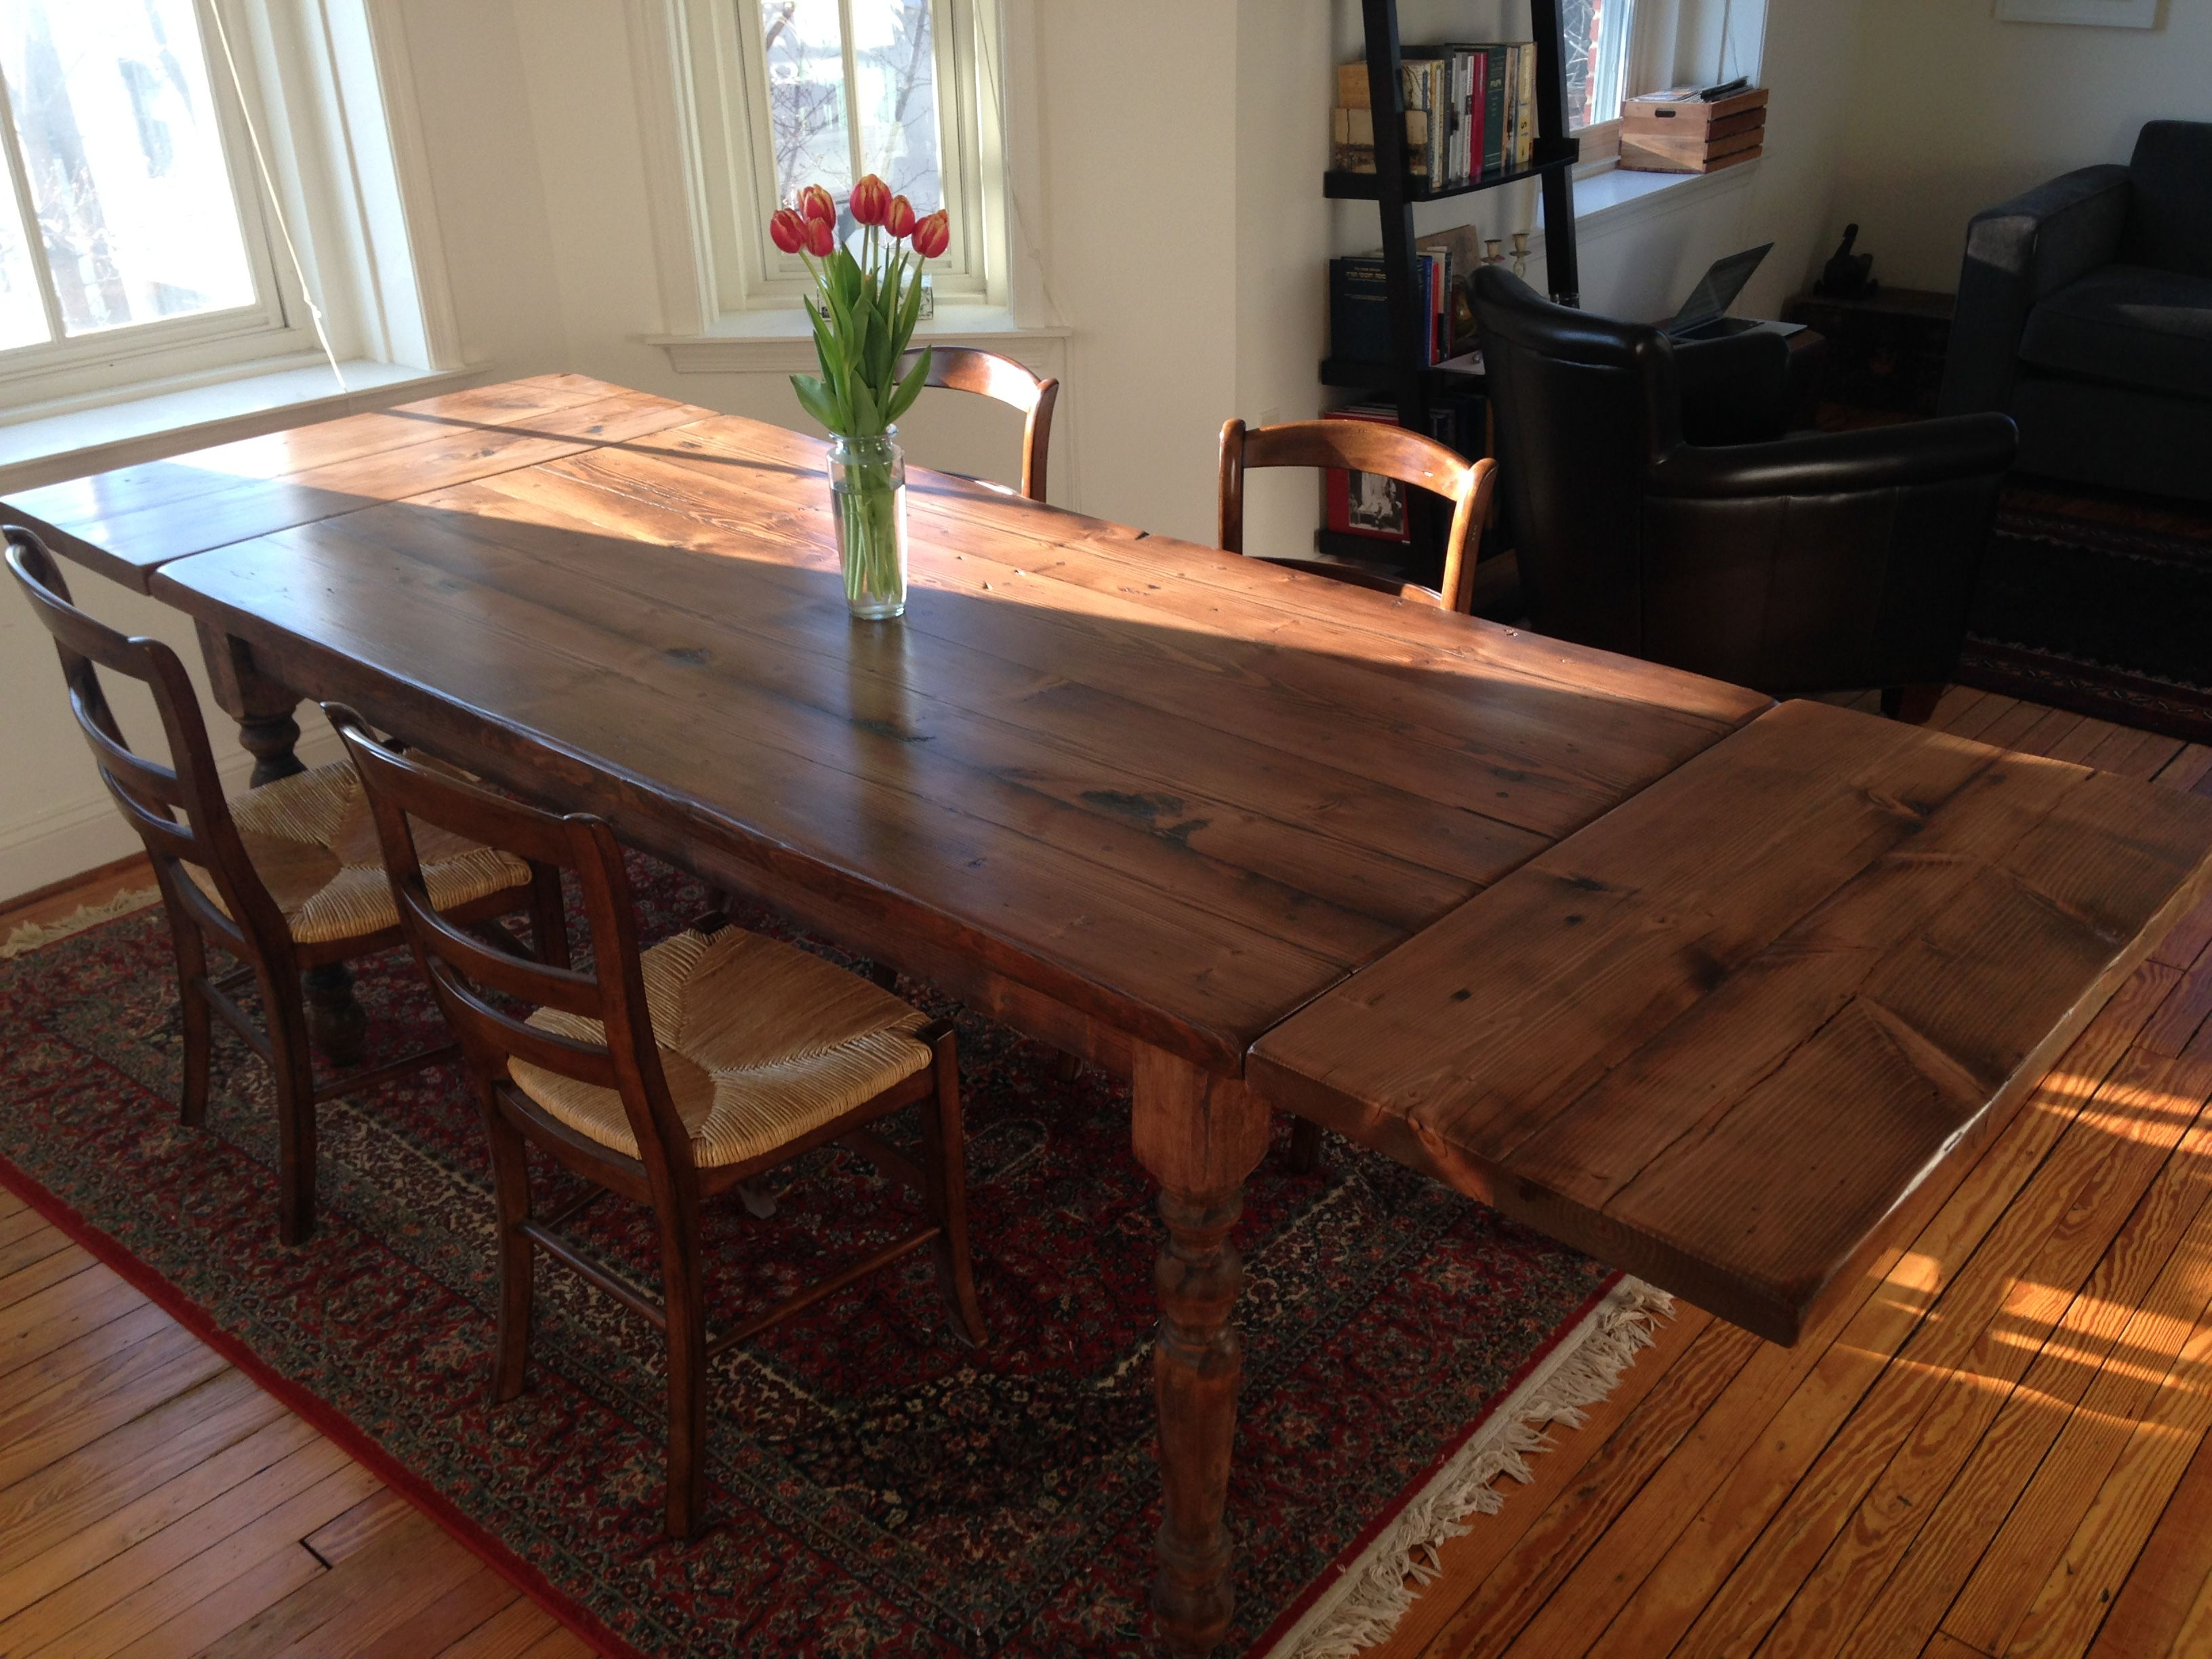 Reclaimed wood farm table with turned columns and end ...